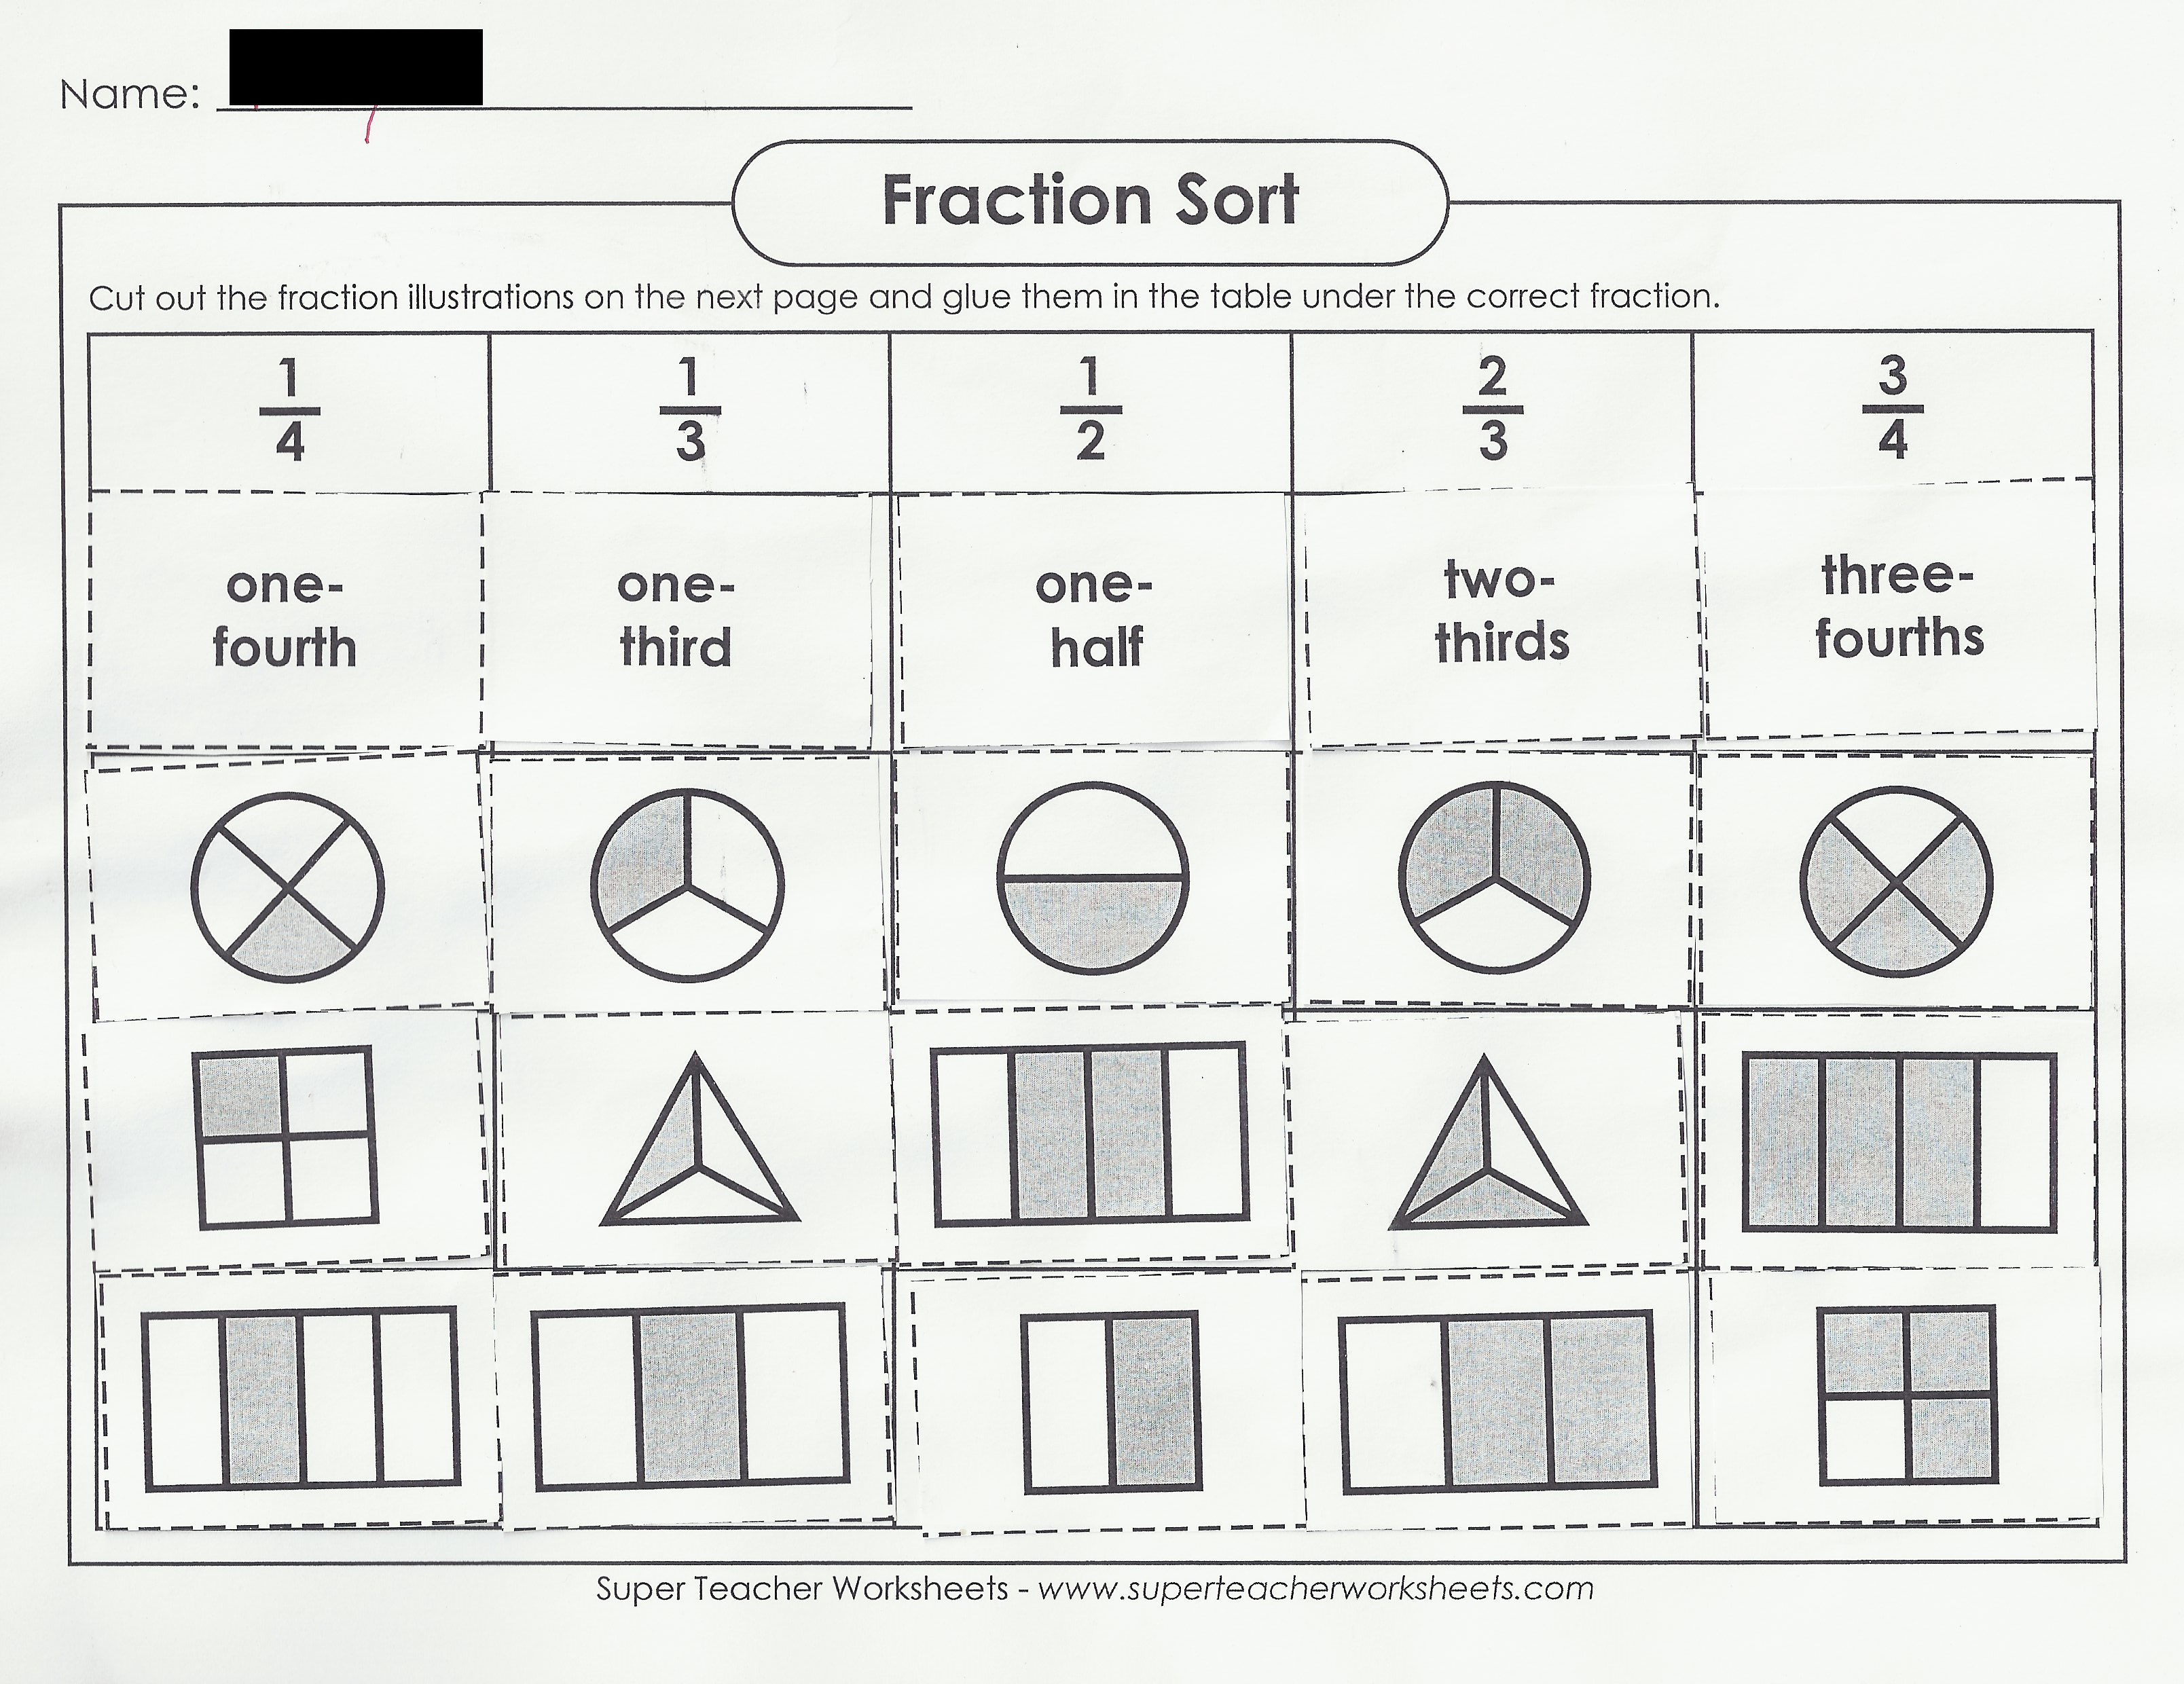 Worksheets Identifying Fractions Worksheet fraction concepts worksheets fractions math story problems 3rd action teresa manfredo dsil worksheets